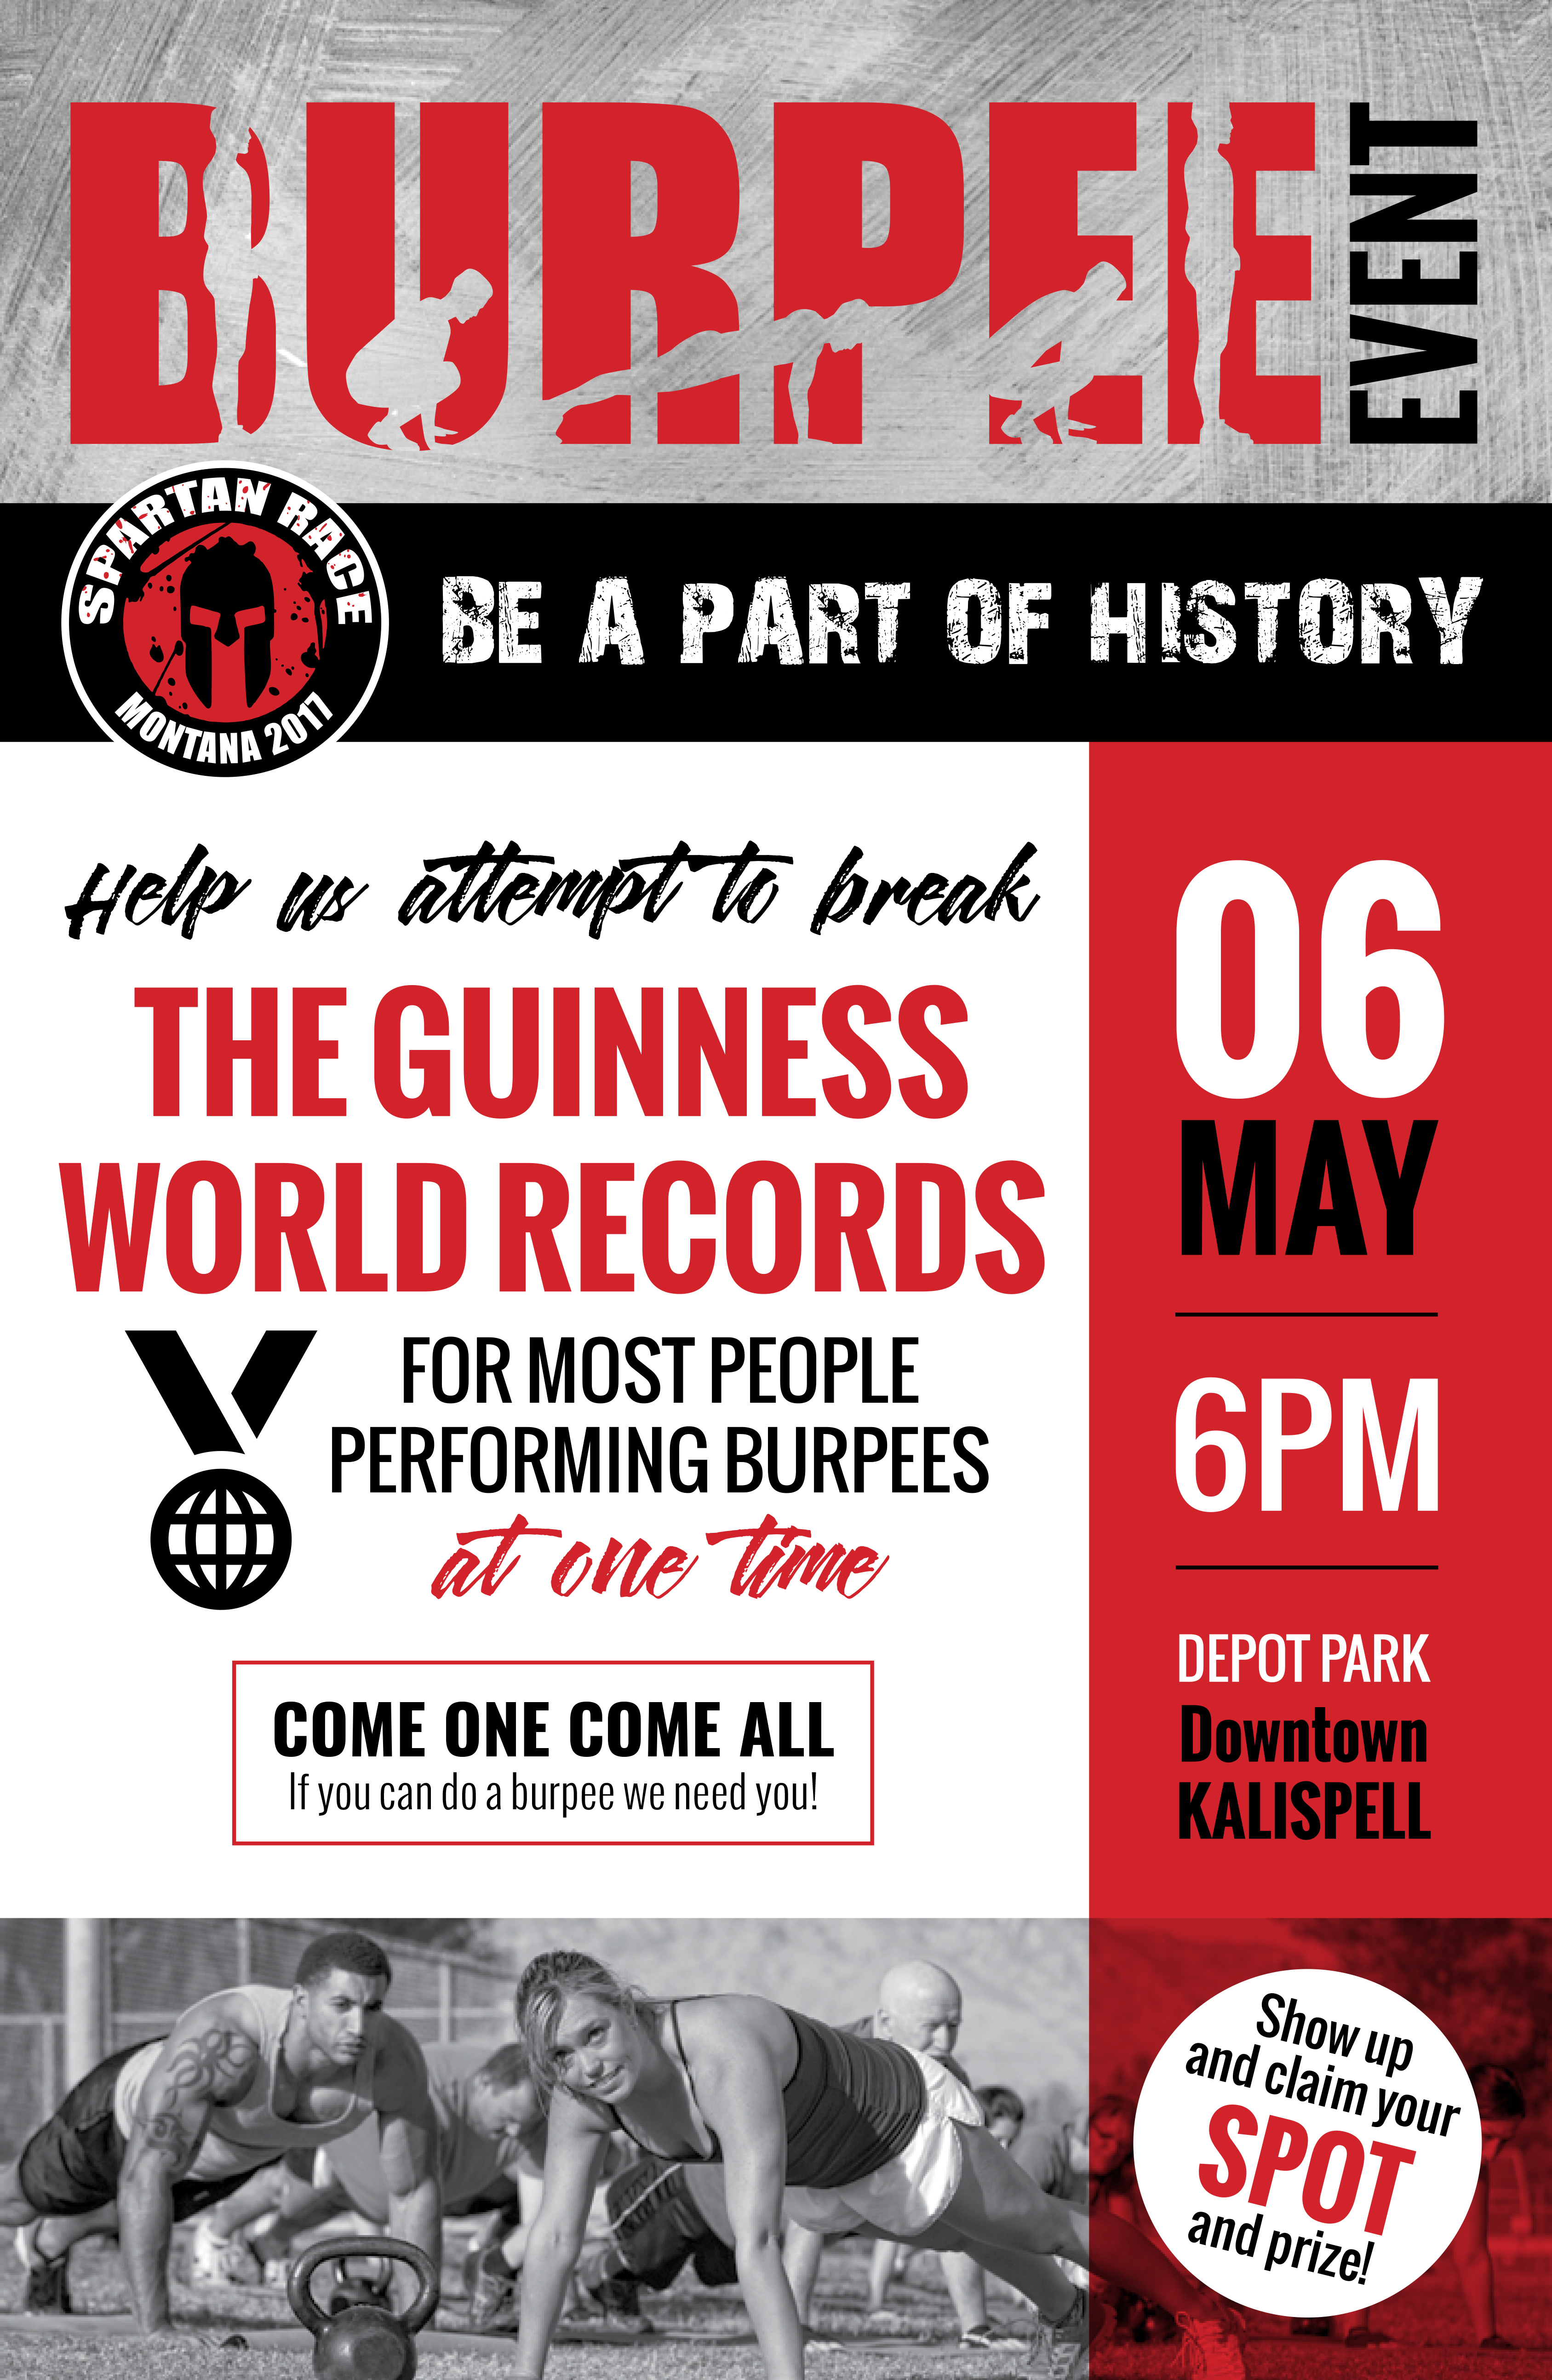 Spartan guinness world record burpee event may 6 2017 for Guinness world record certificate template